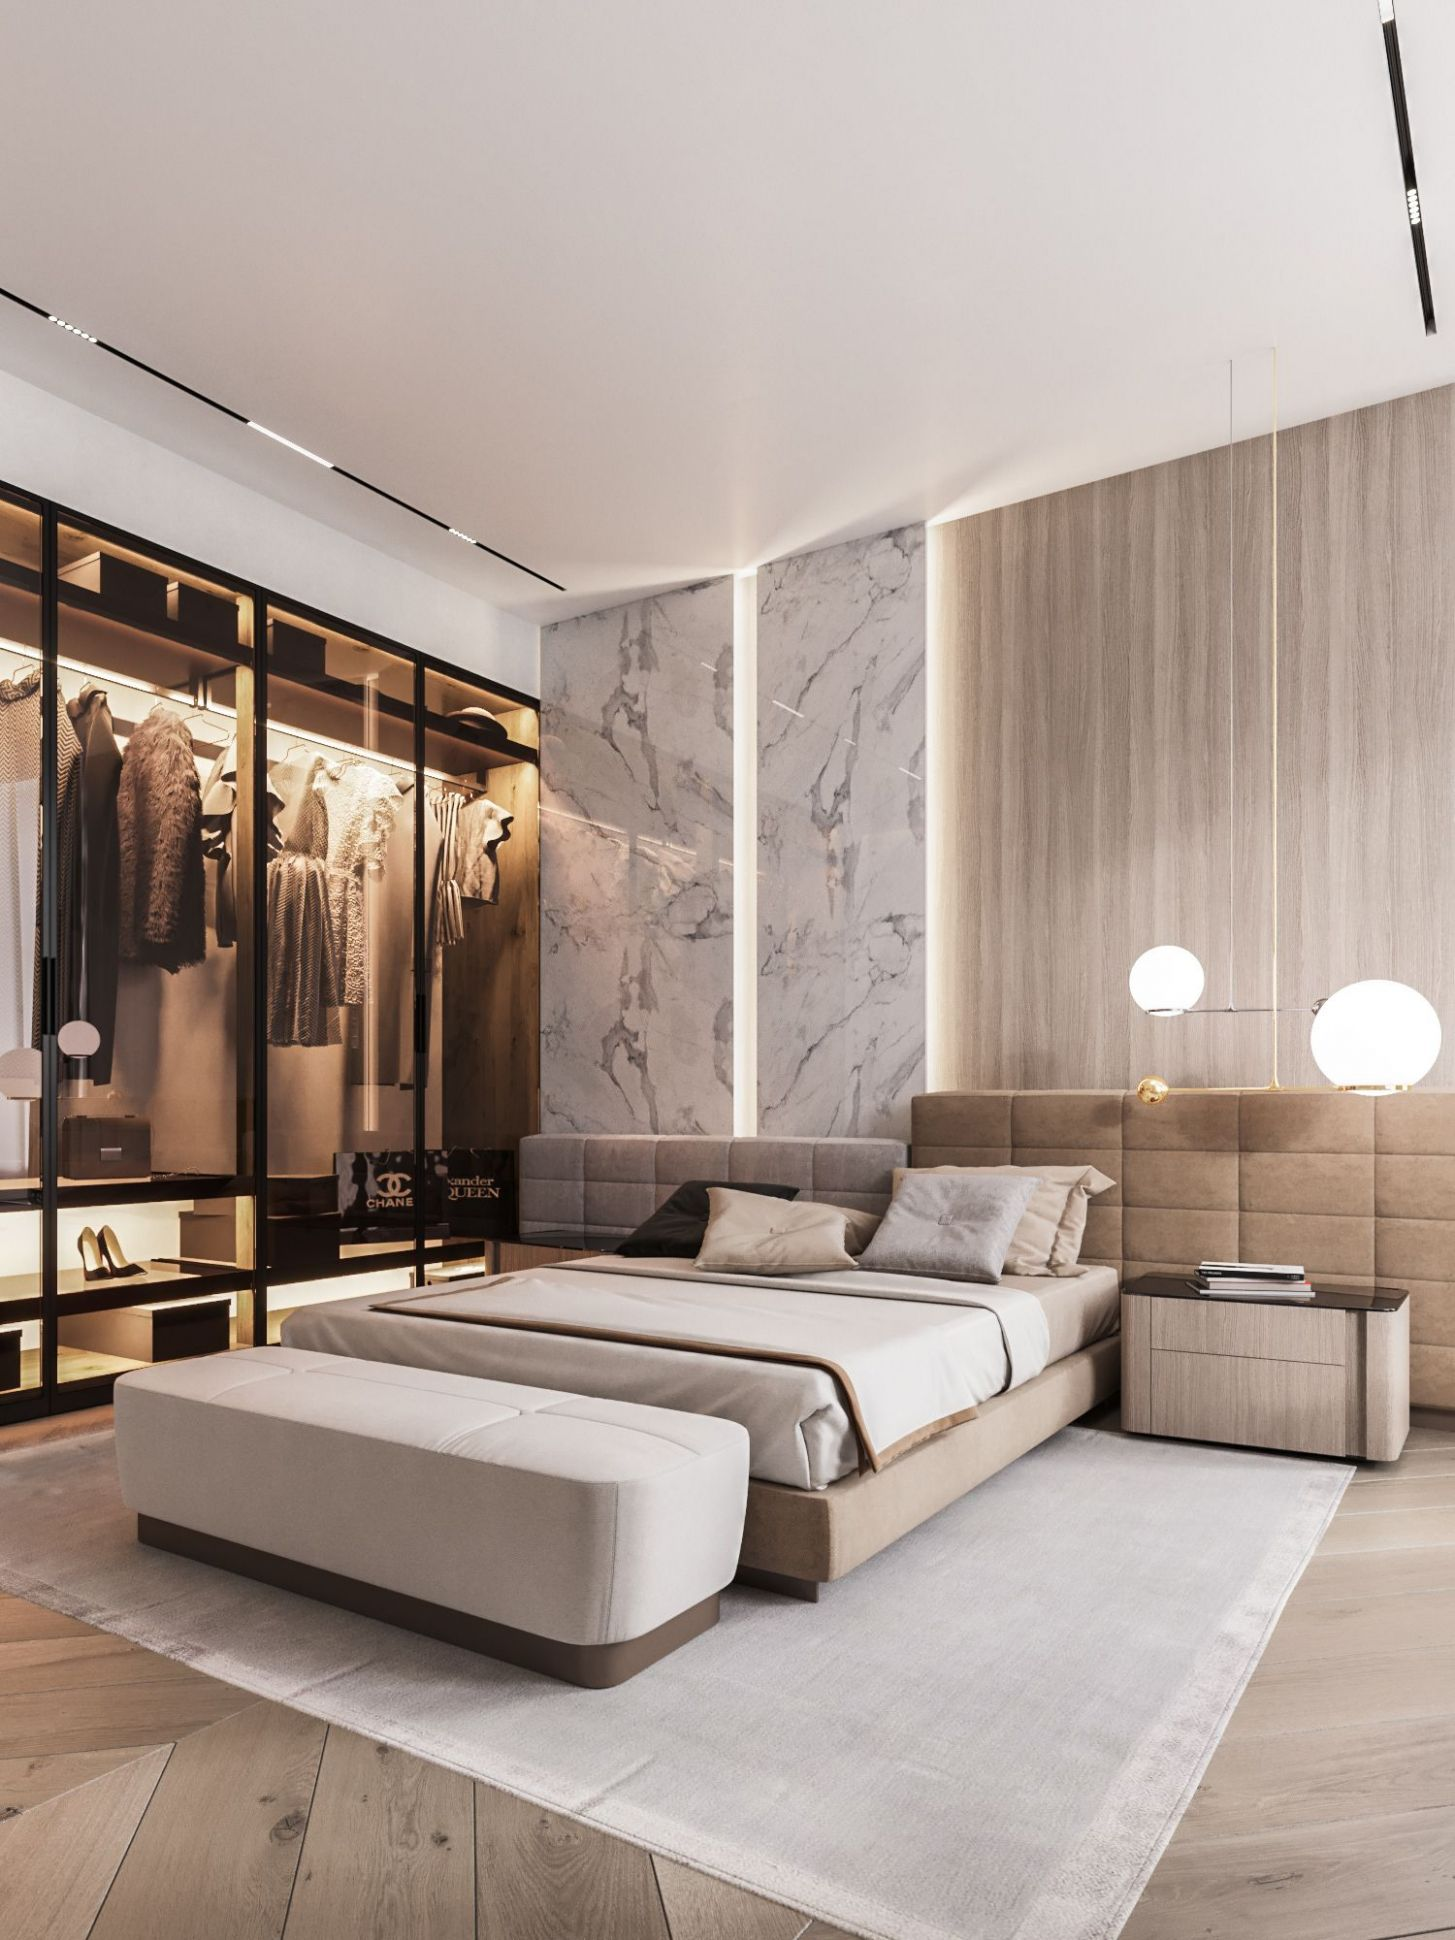 Design project of the apartment 112m12 Moscow on Behance ...